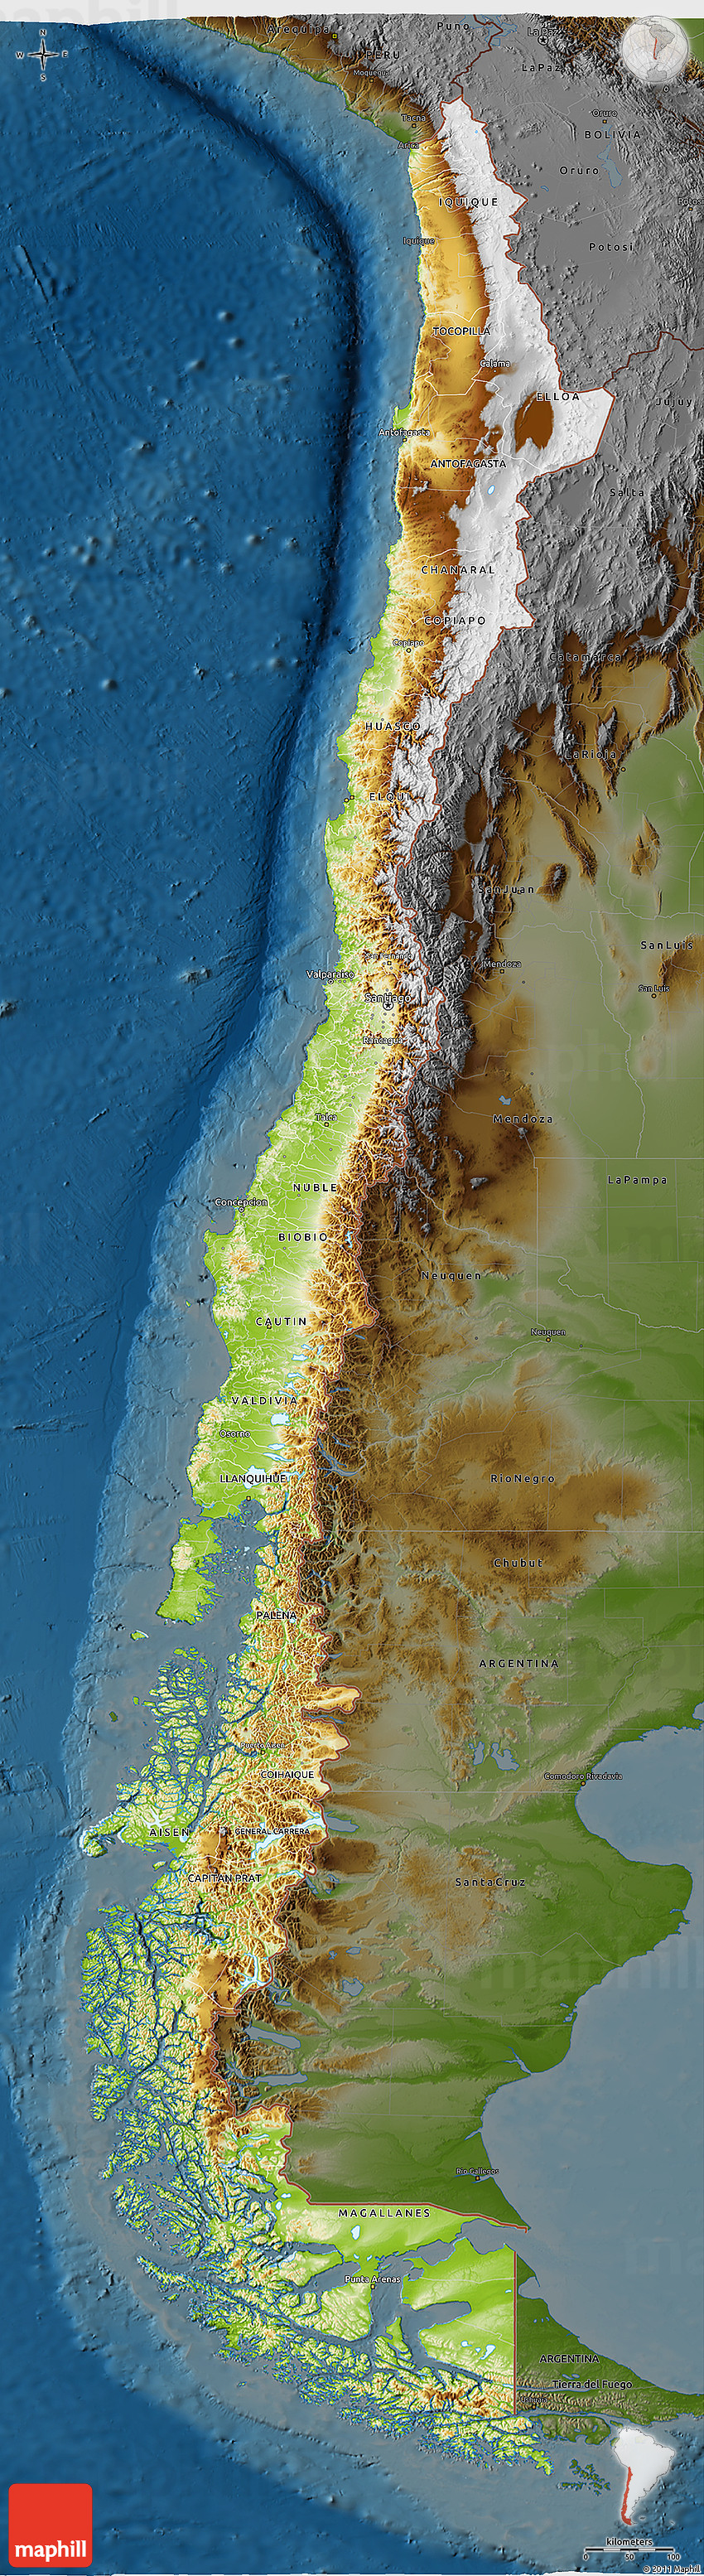 Physical 3D Map of Chile, darken on chile volcano erupts, chile's map, south america map, chile rivers map, chile elevation map, chile precipitation map, chile culture, chile population density map, chile history, chile flag, chile rodeo, chile world map, chile climate zone map, chile geography, chile landscape, chile gold map, chile economic map, chile beaches, chile food,